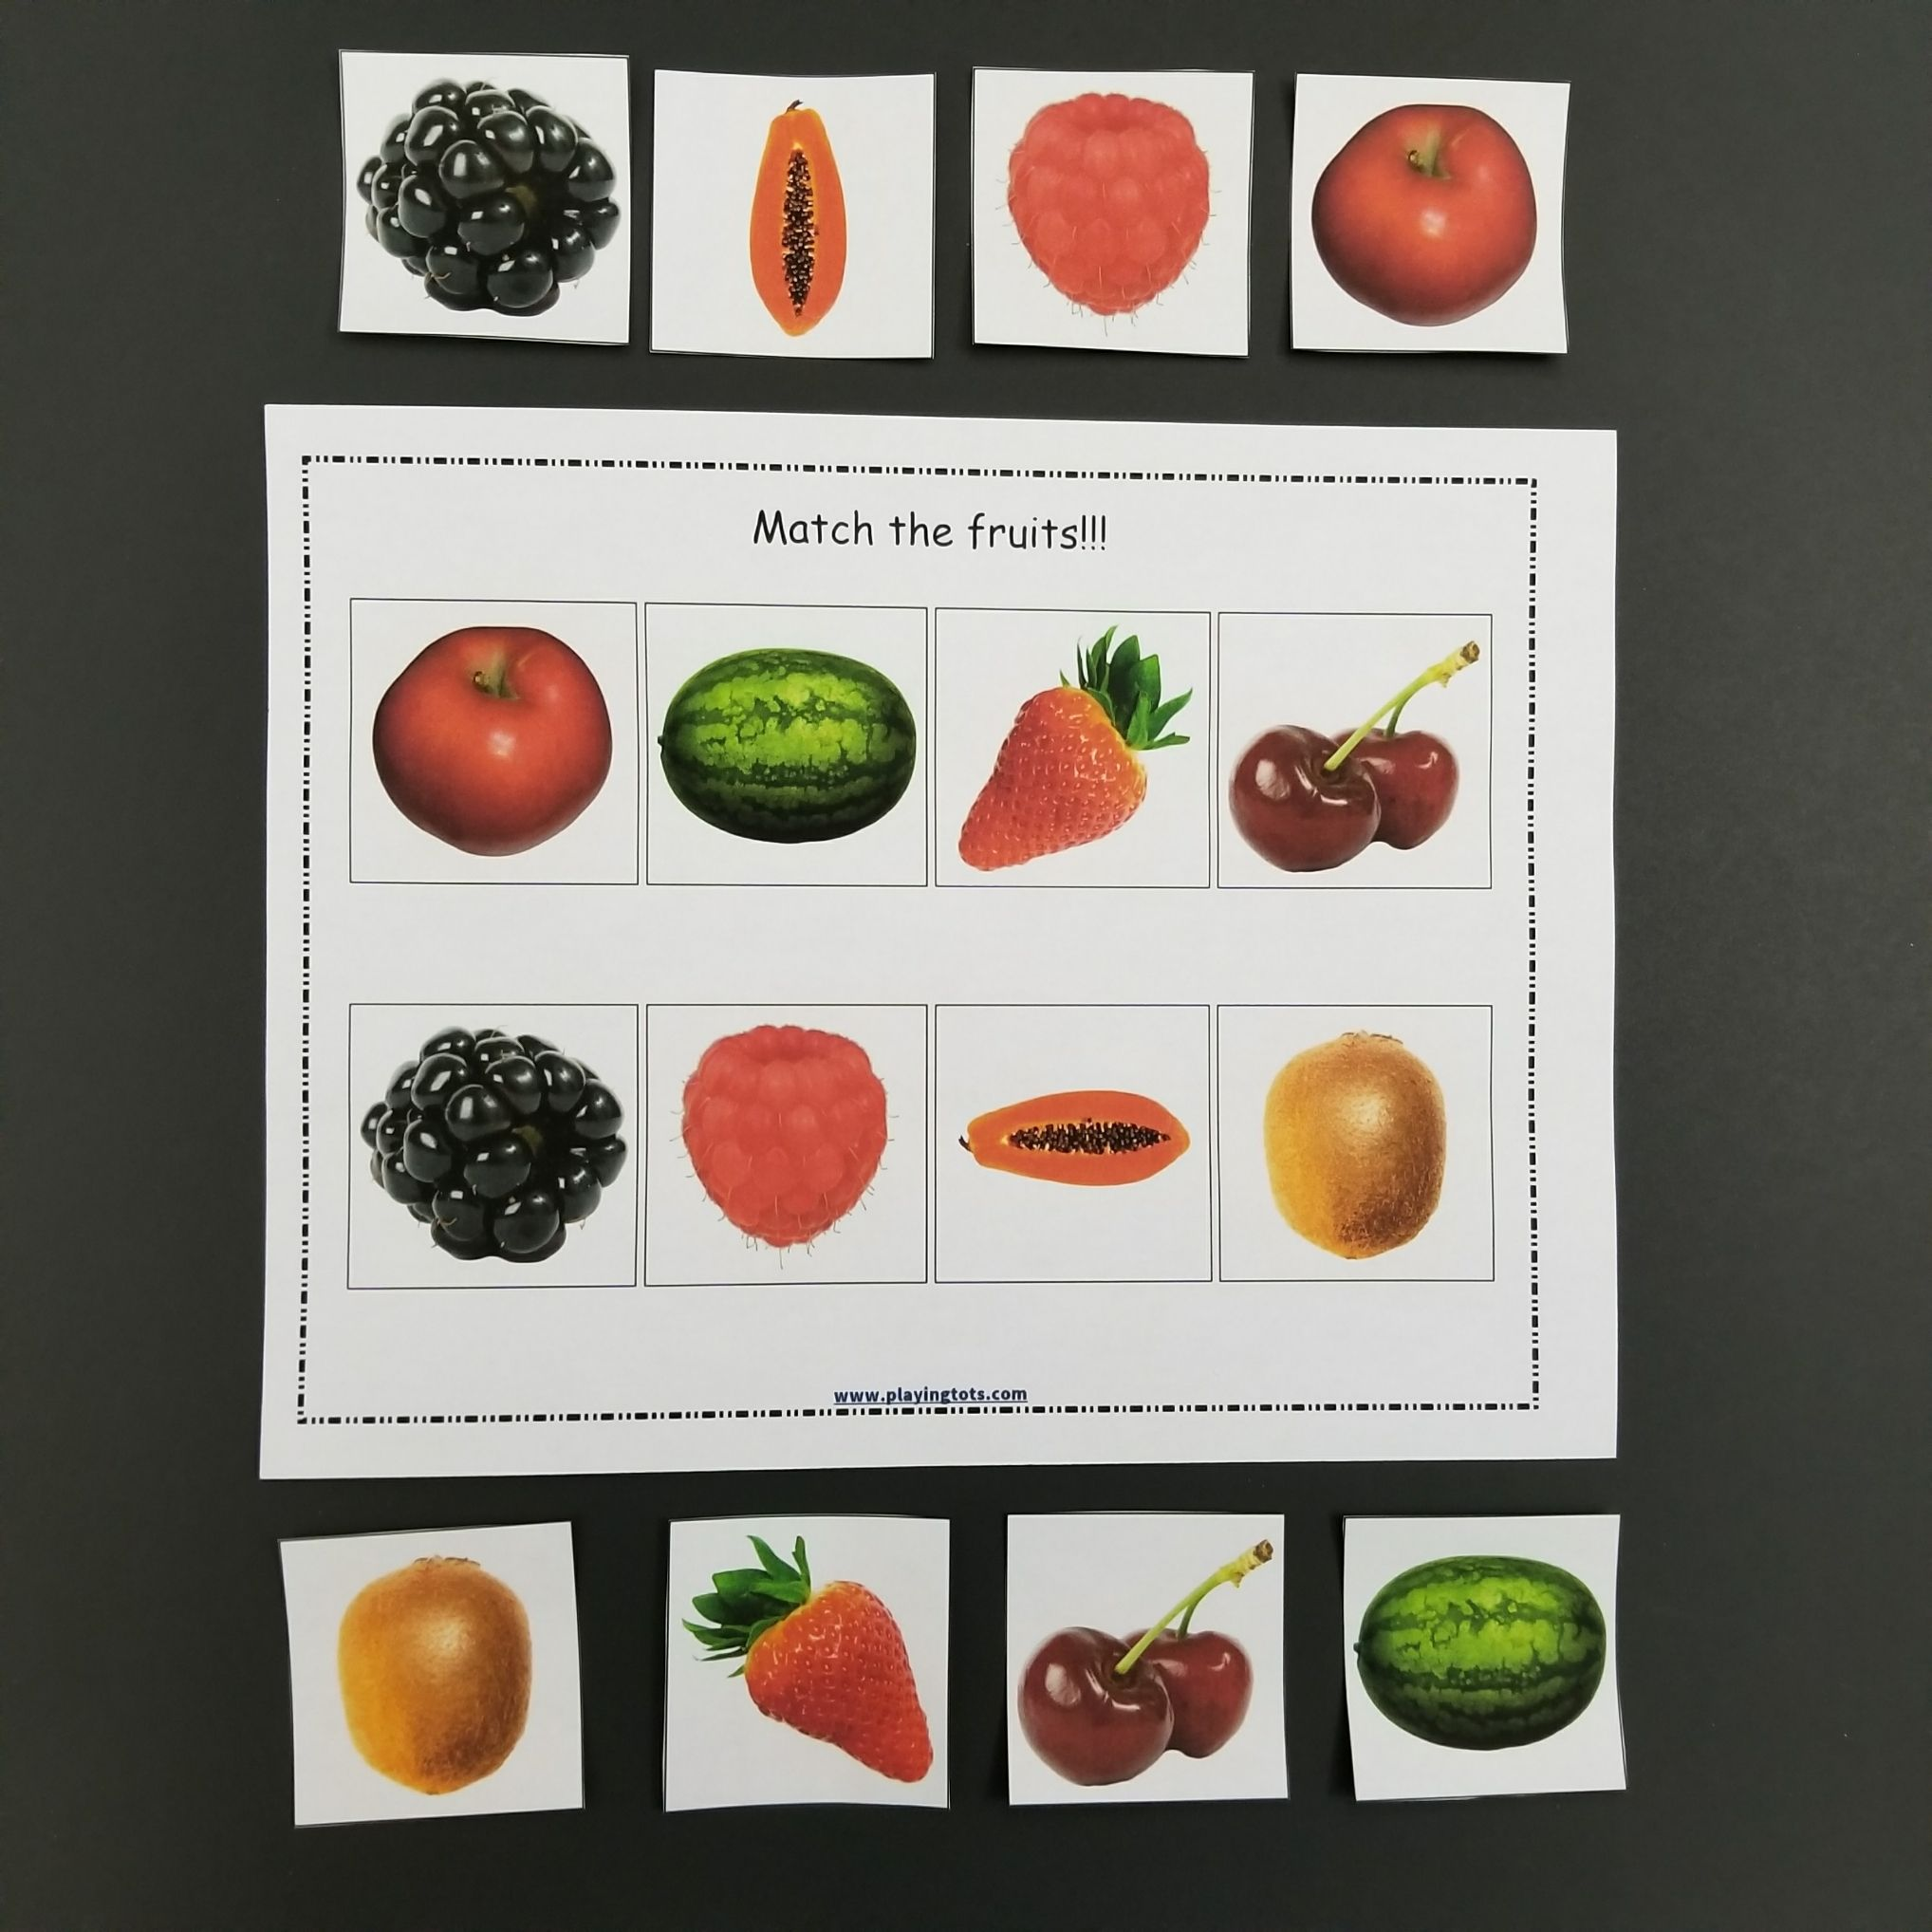 Match The Fruits Activity